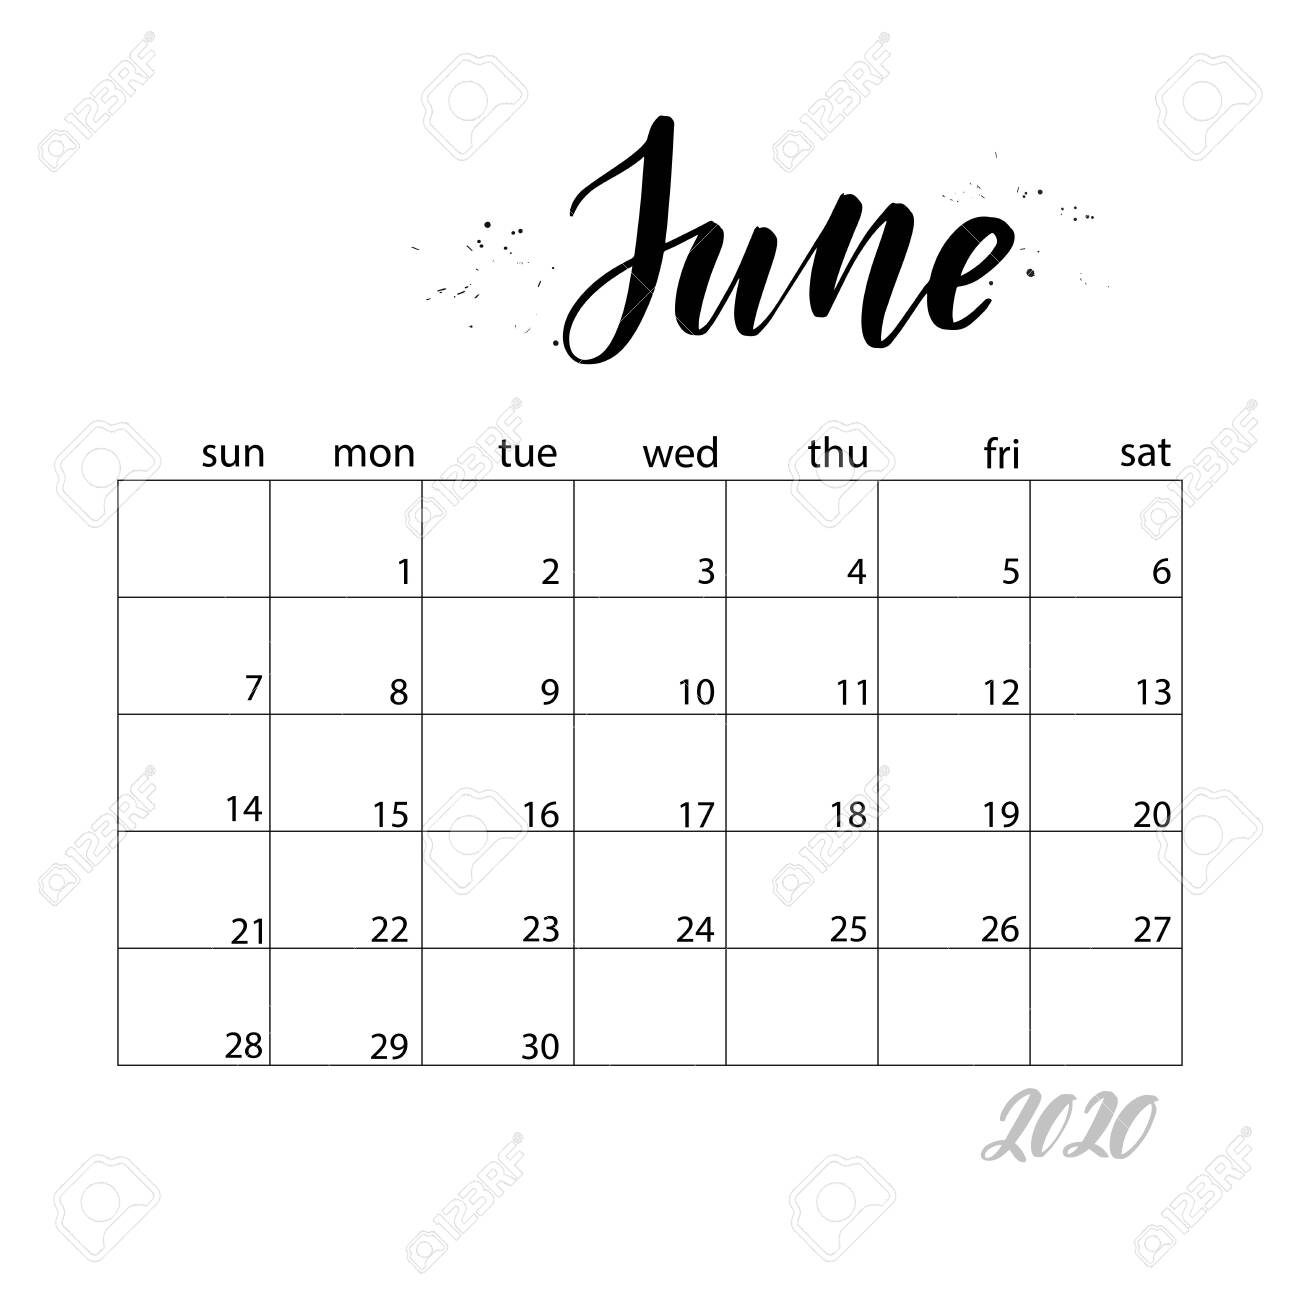 June. Monthly Calendar For 2020 Year. Handwritten Modern Calligraphy..